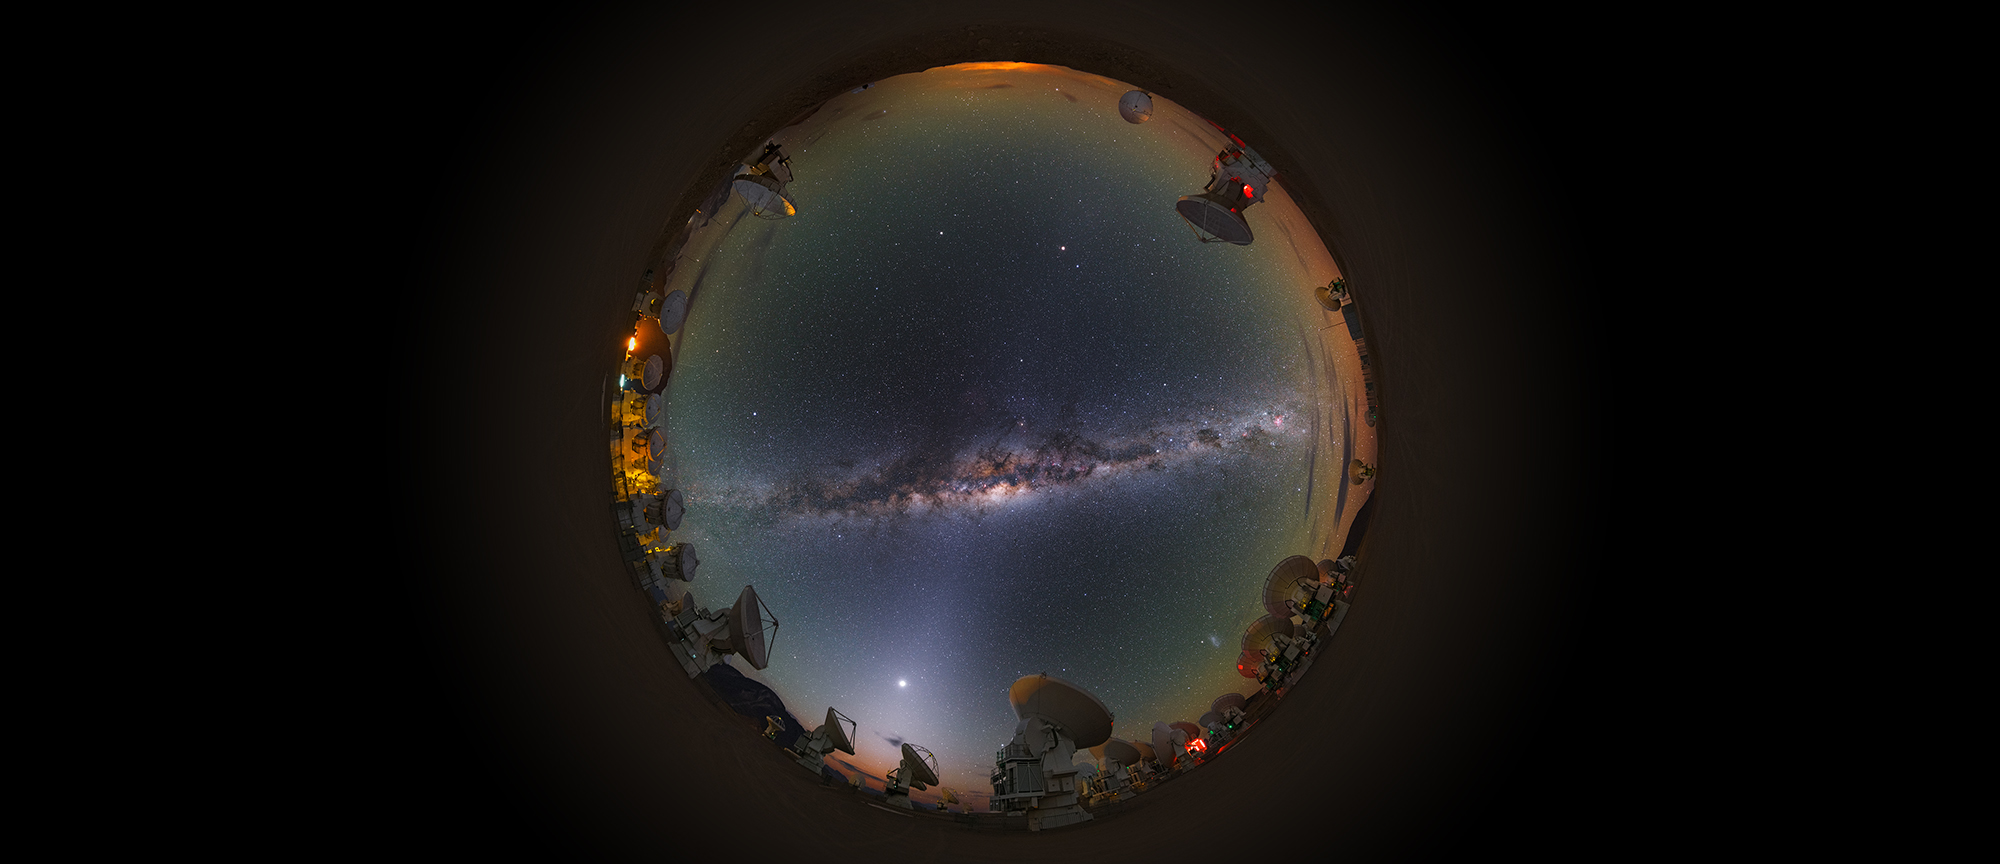 Facing the Milky Way. Credits:  Y. Beletsky (LCO)/ESO